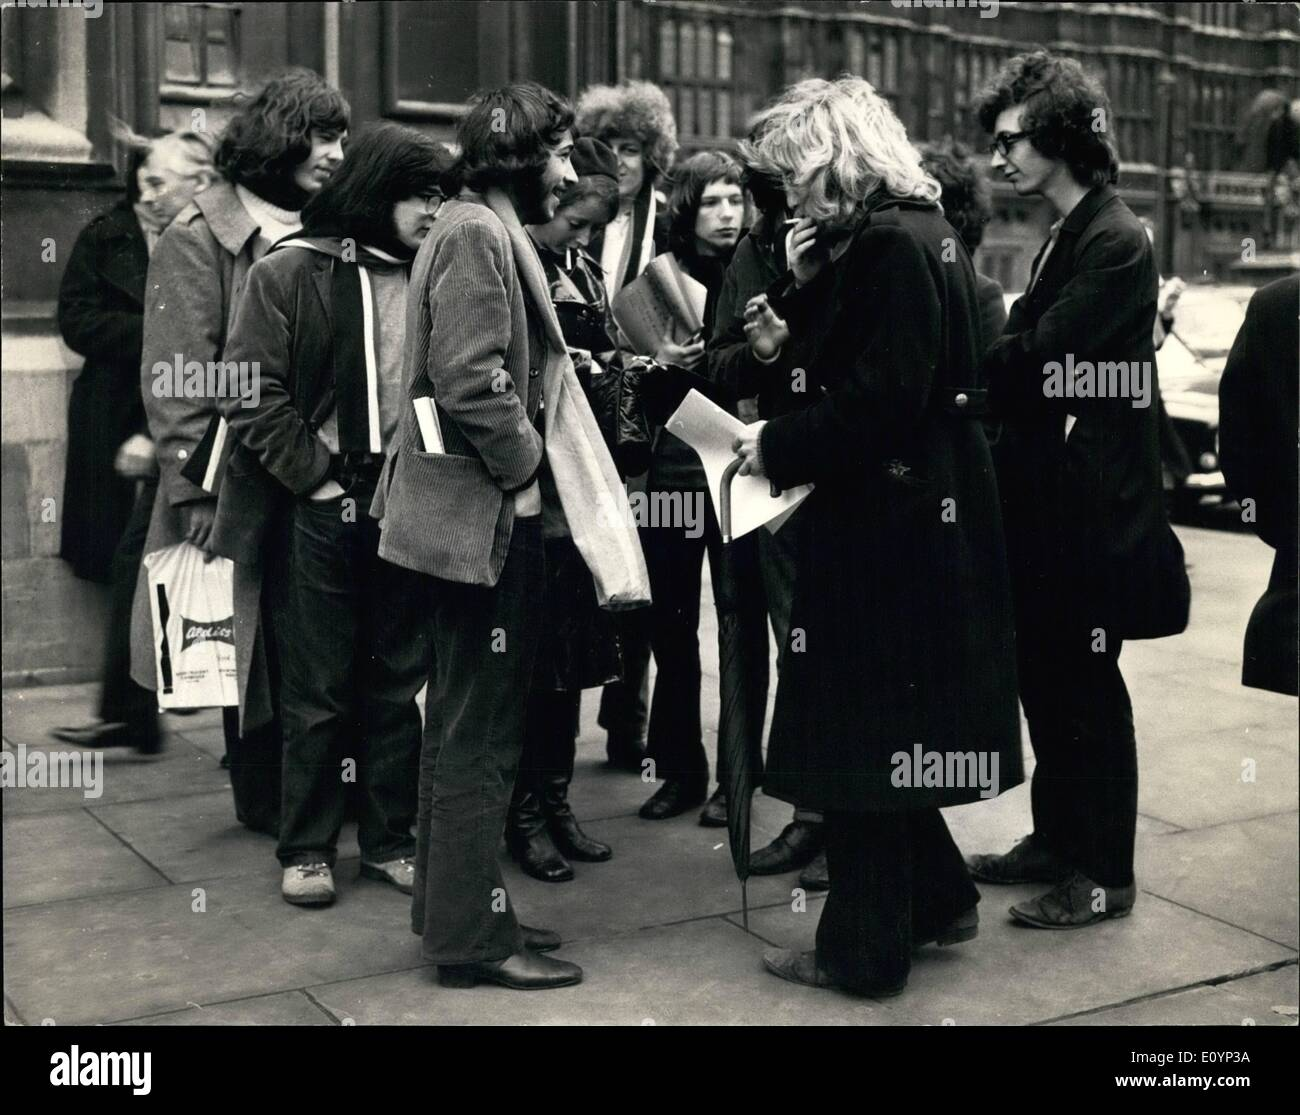 Jan. 01, 1971 - Students Lobby MPs over expulsion of Rudi Dutschke . Students from London University went to the House of Commons today, to lohbby MP's over the Government 's expulsion of Rudi Dutschke. Photo shows Students assembled outside the House of Commons before lobbying MP's today. - Stock Image